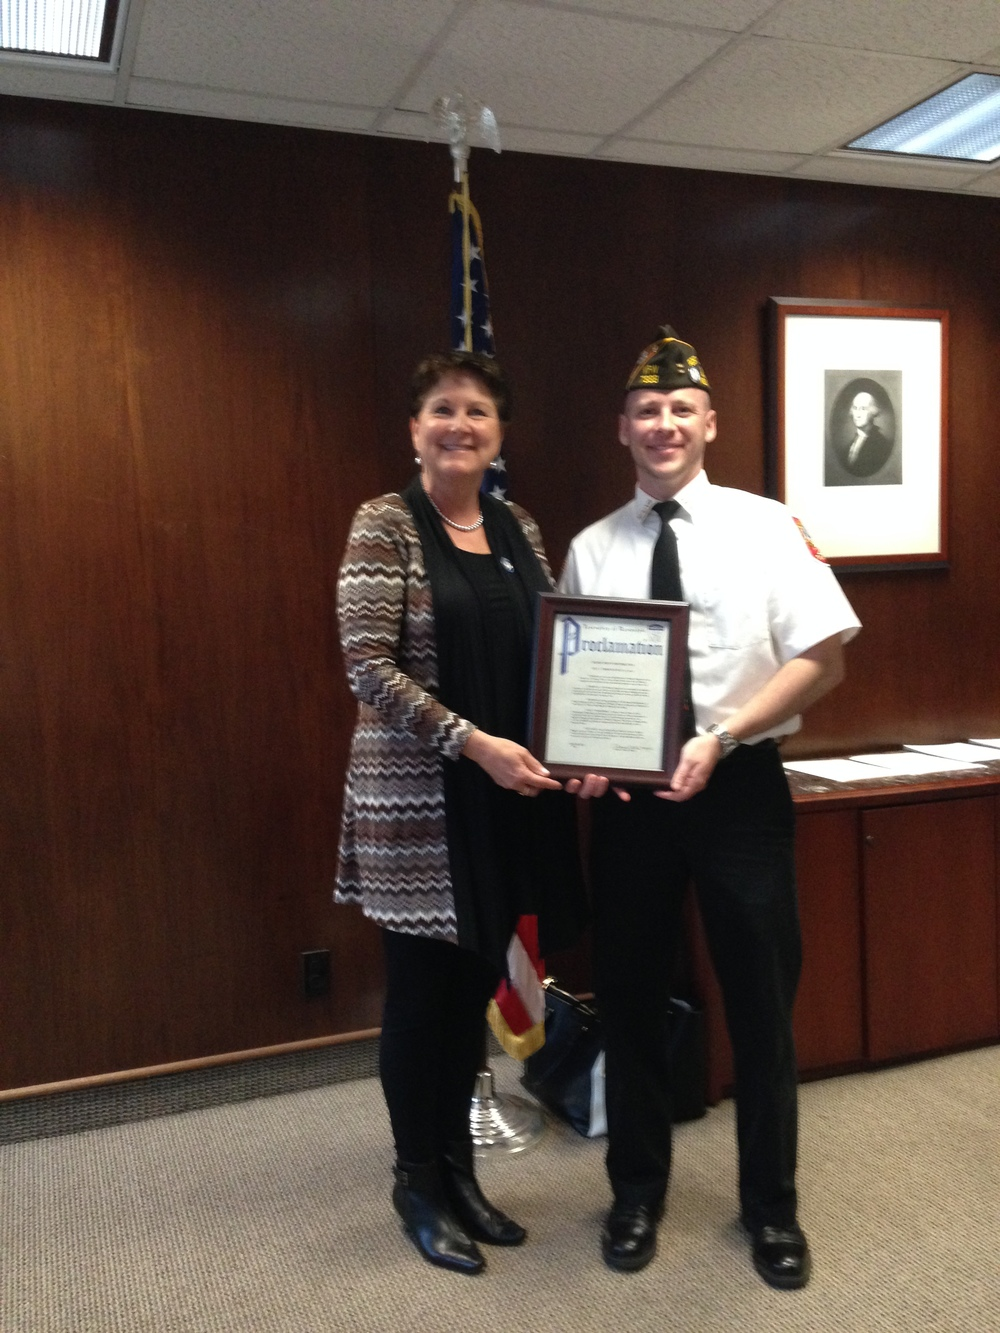 At a recent Randolph town council meeting, Mayor Joanne Veech presented Randolph Memorial Post #7333, Veterans of Foreign Wars Post Commander, Scott with a proclamation for the Buddy Poppy distribution program which begins on May 1st through Memorial Day week. The Mayor's proclamation included the wearing of the Buddy Poppy showing a mute display of remembrance for those who fought and died for the freedoms we take for granted. The proclamation reminds all township patriotic citizens to not only wear it but to give generously in support of our veterans' widows and orphans, hospitalized veterans, and many other veteran programs. (pictured L-R: Mayor Joanne Veech and Post Commander Scott; picture submitted by Jack Sassaman)